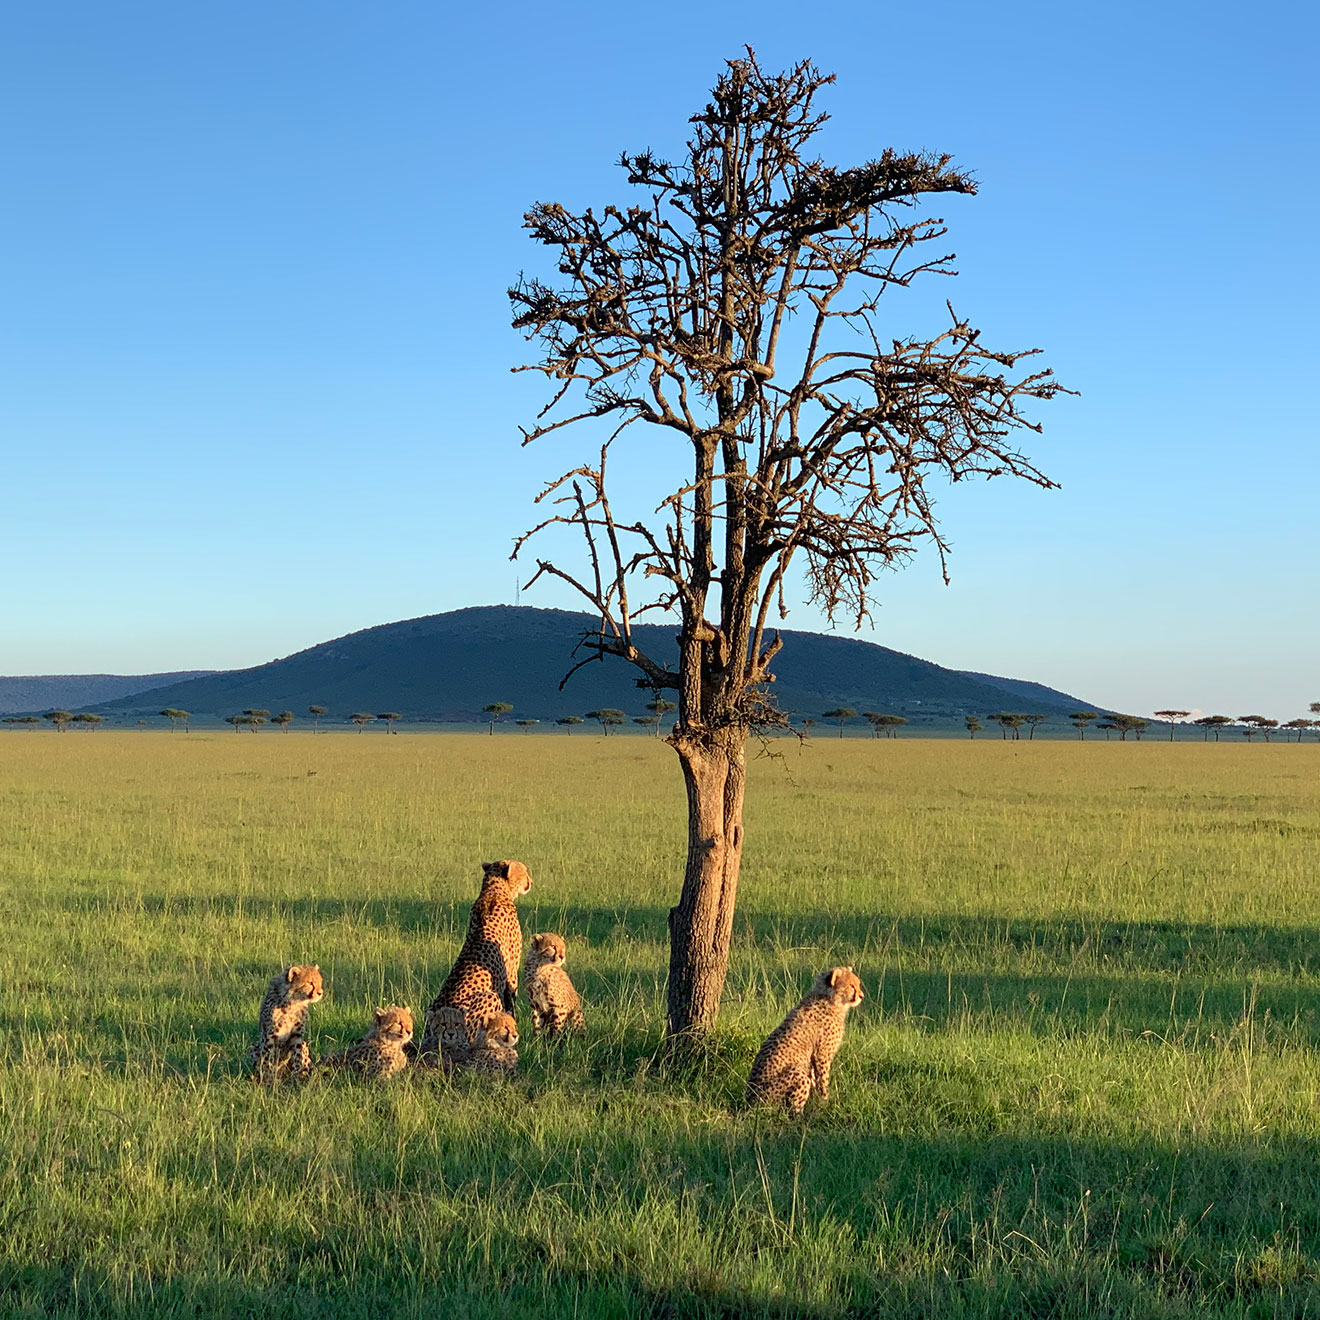 a pack of cheetahs sitting peacefully in the grass next to a tree